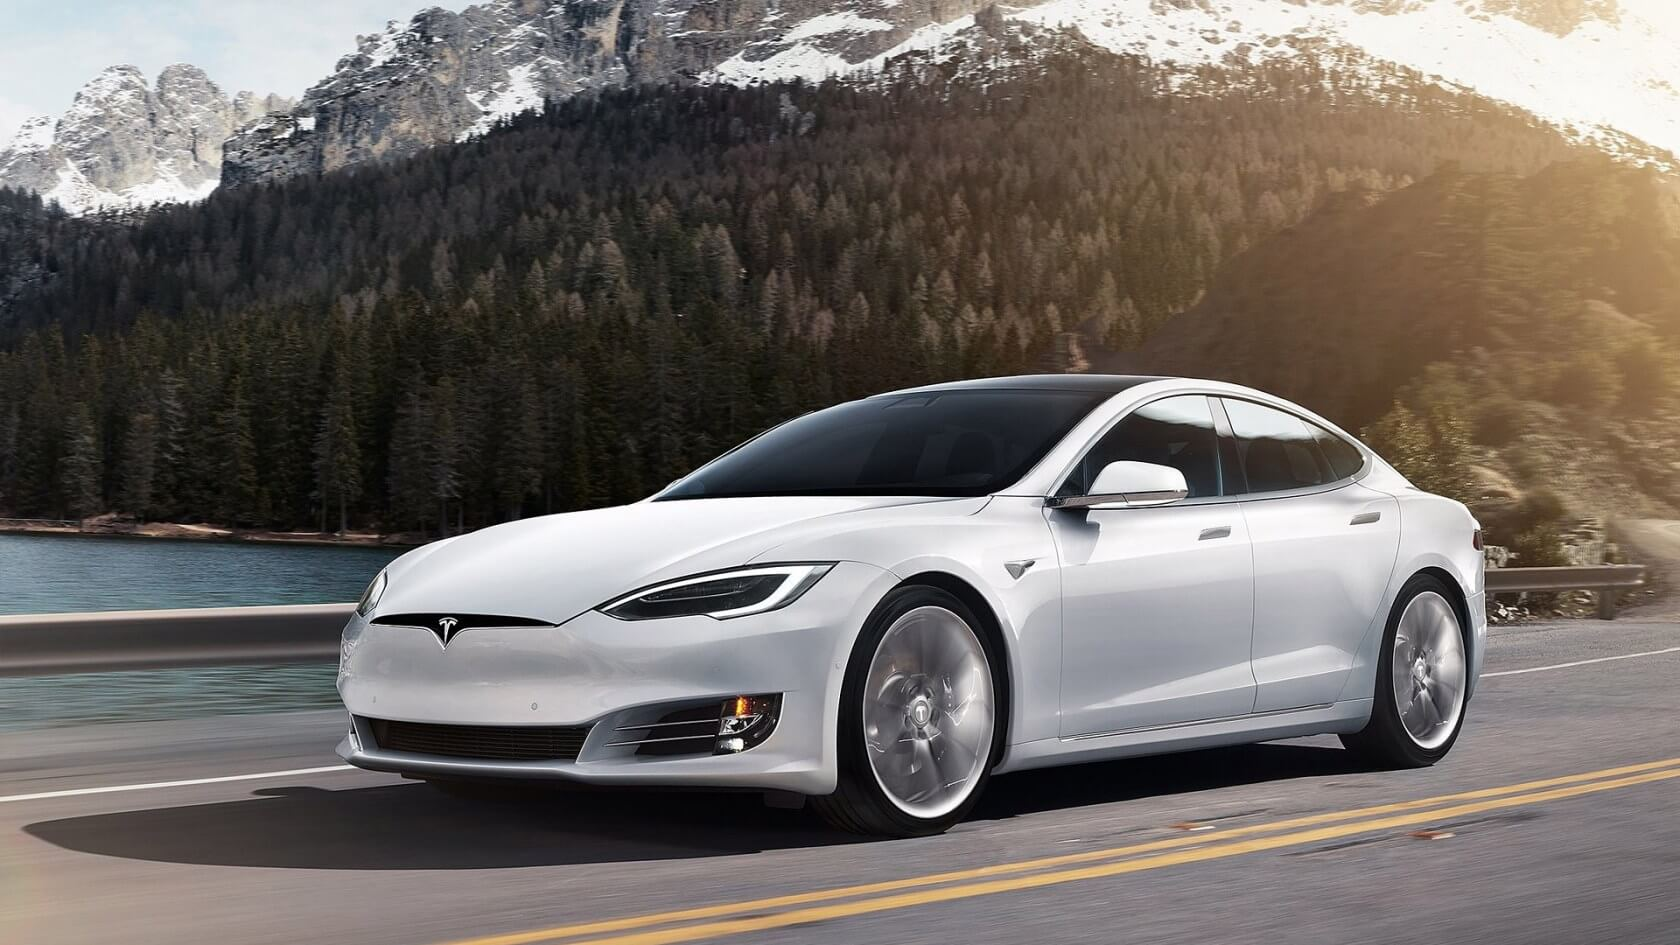 Tesla's best Model X and Model S vehicles receive major